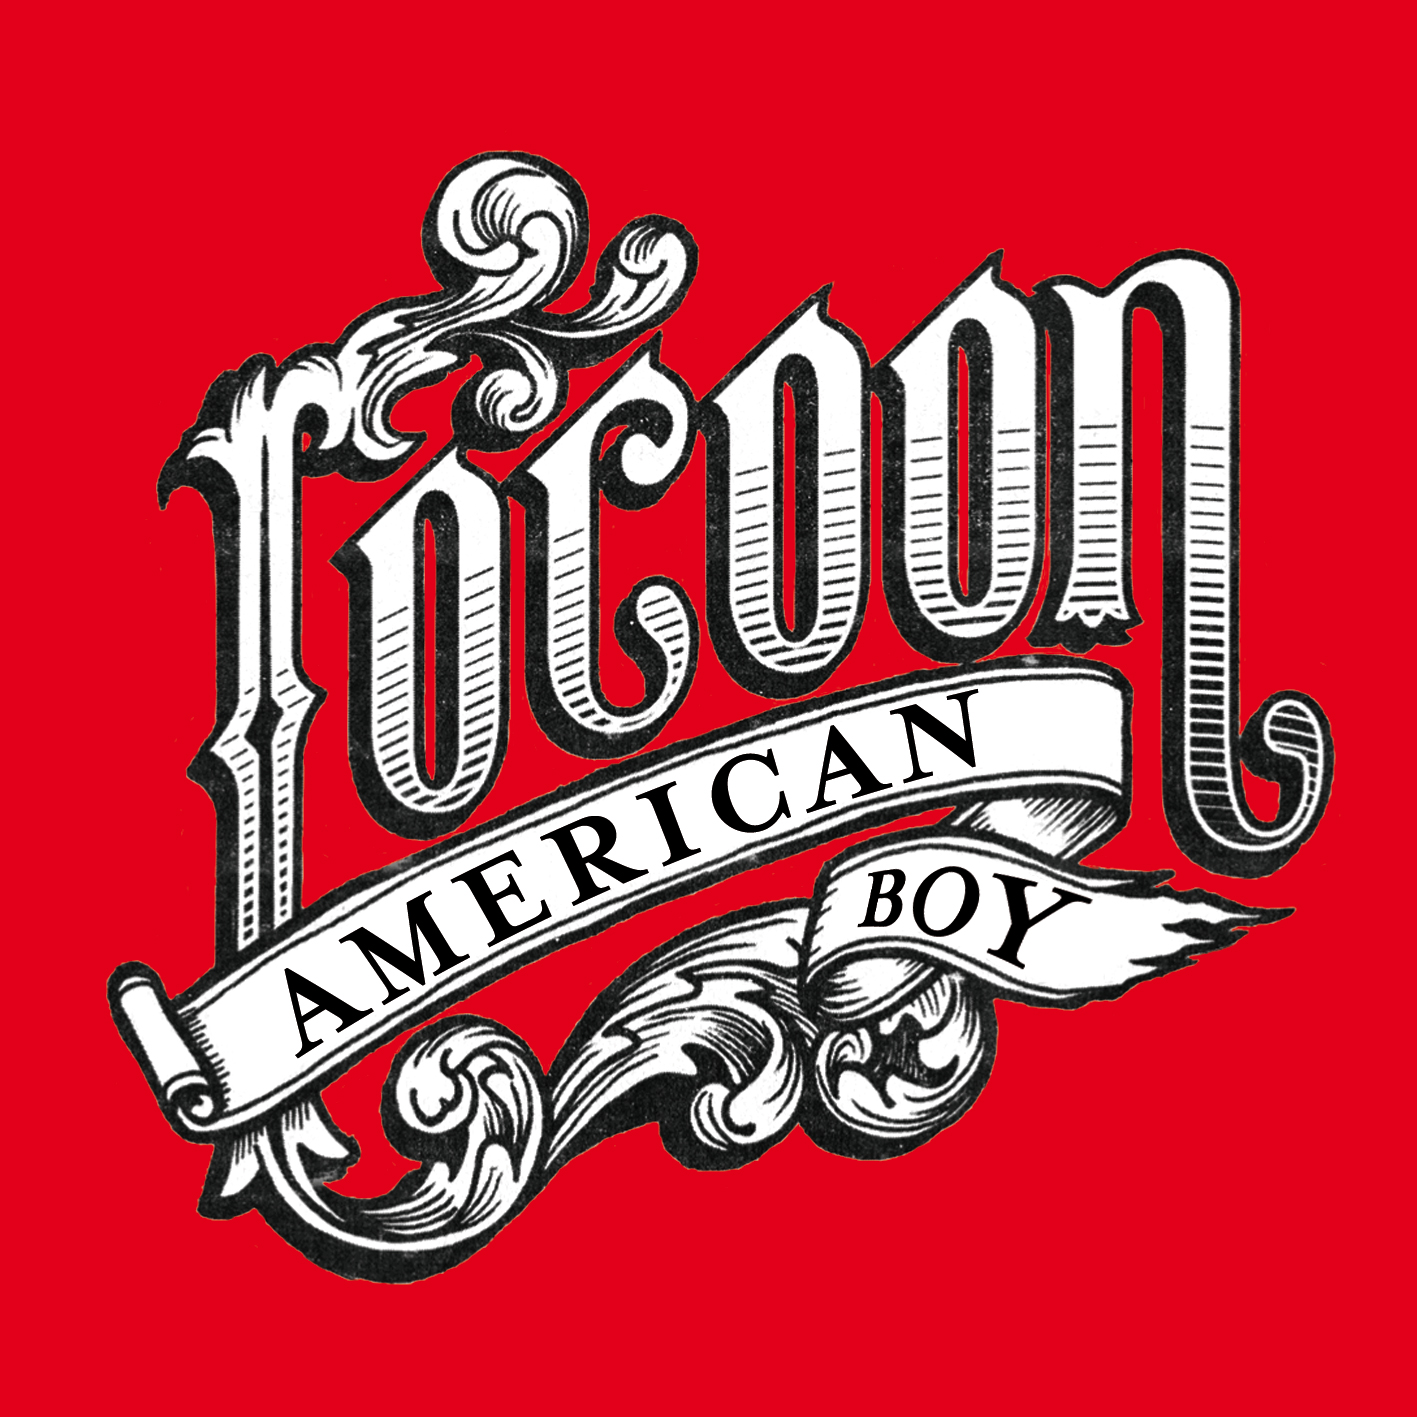 cocoon_americanboy